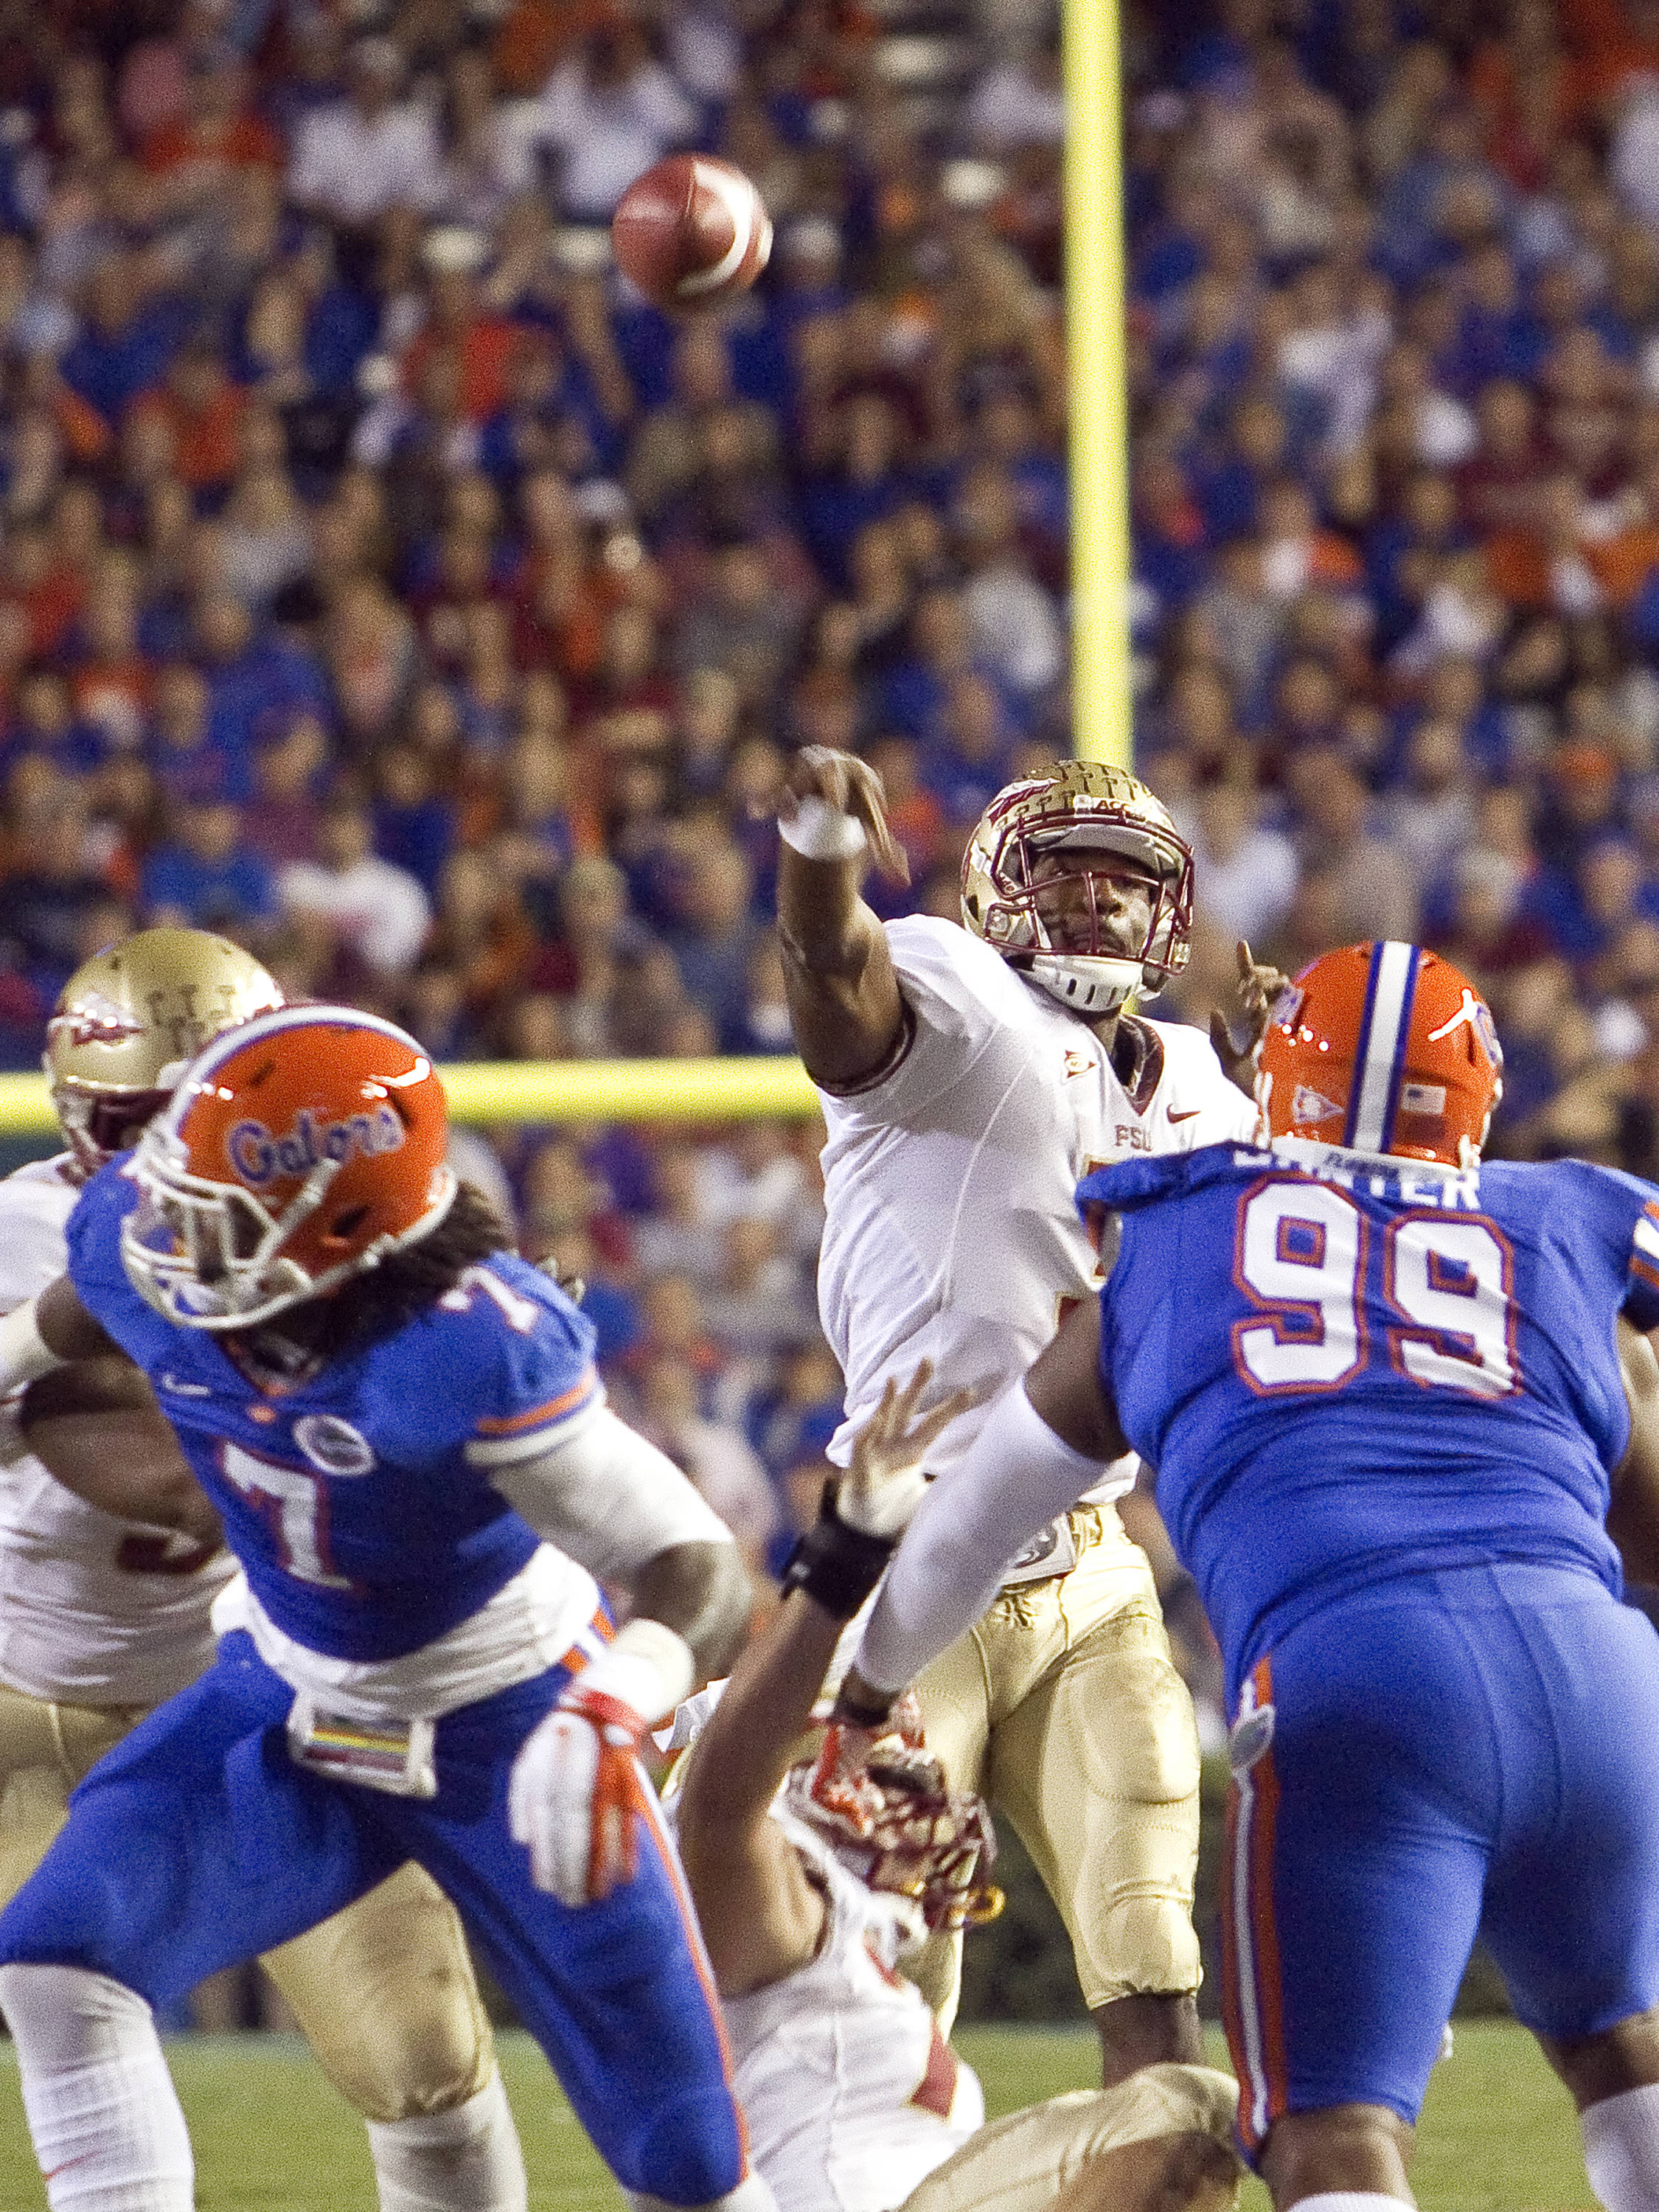 EJ Manuel (3) throwing over a Florida rush, FSU vs Florida, 11/26/2011